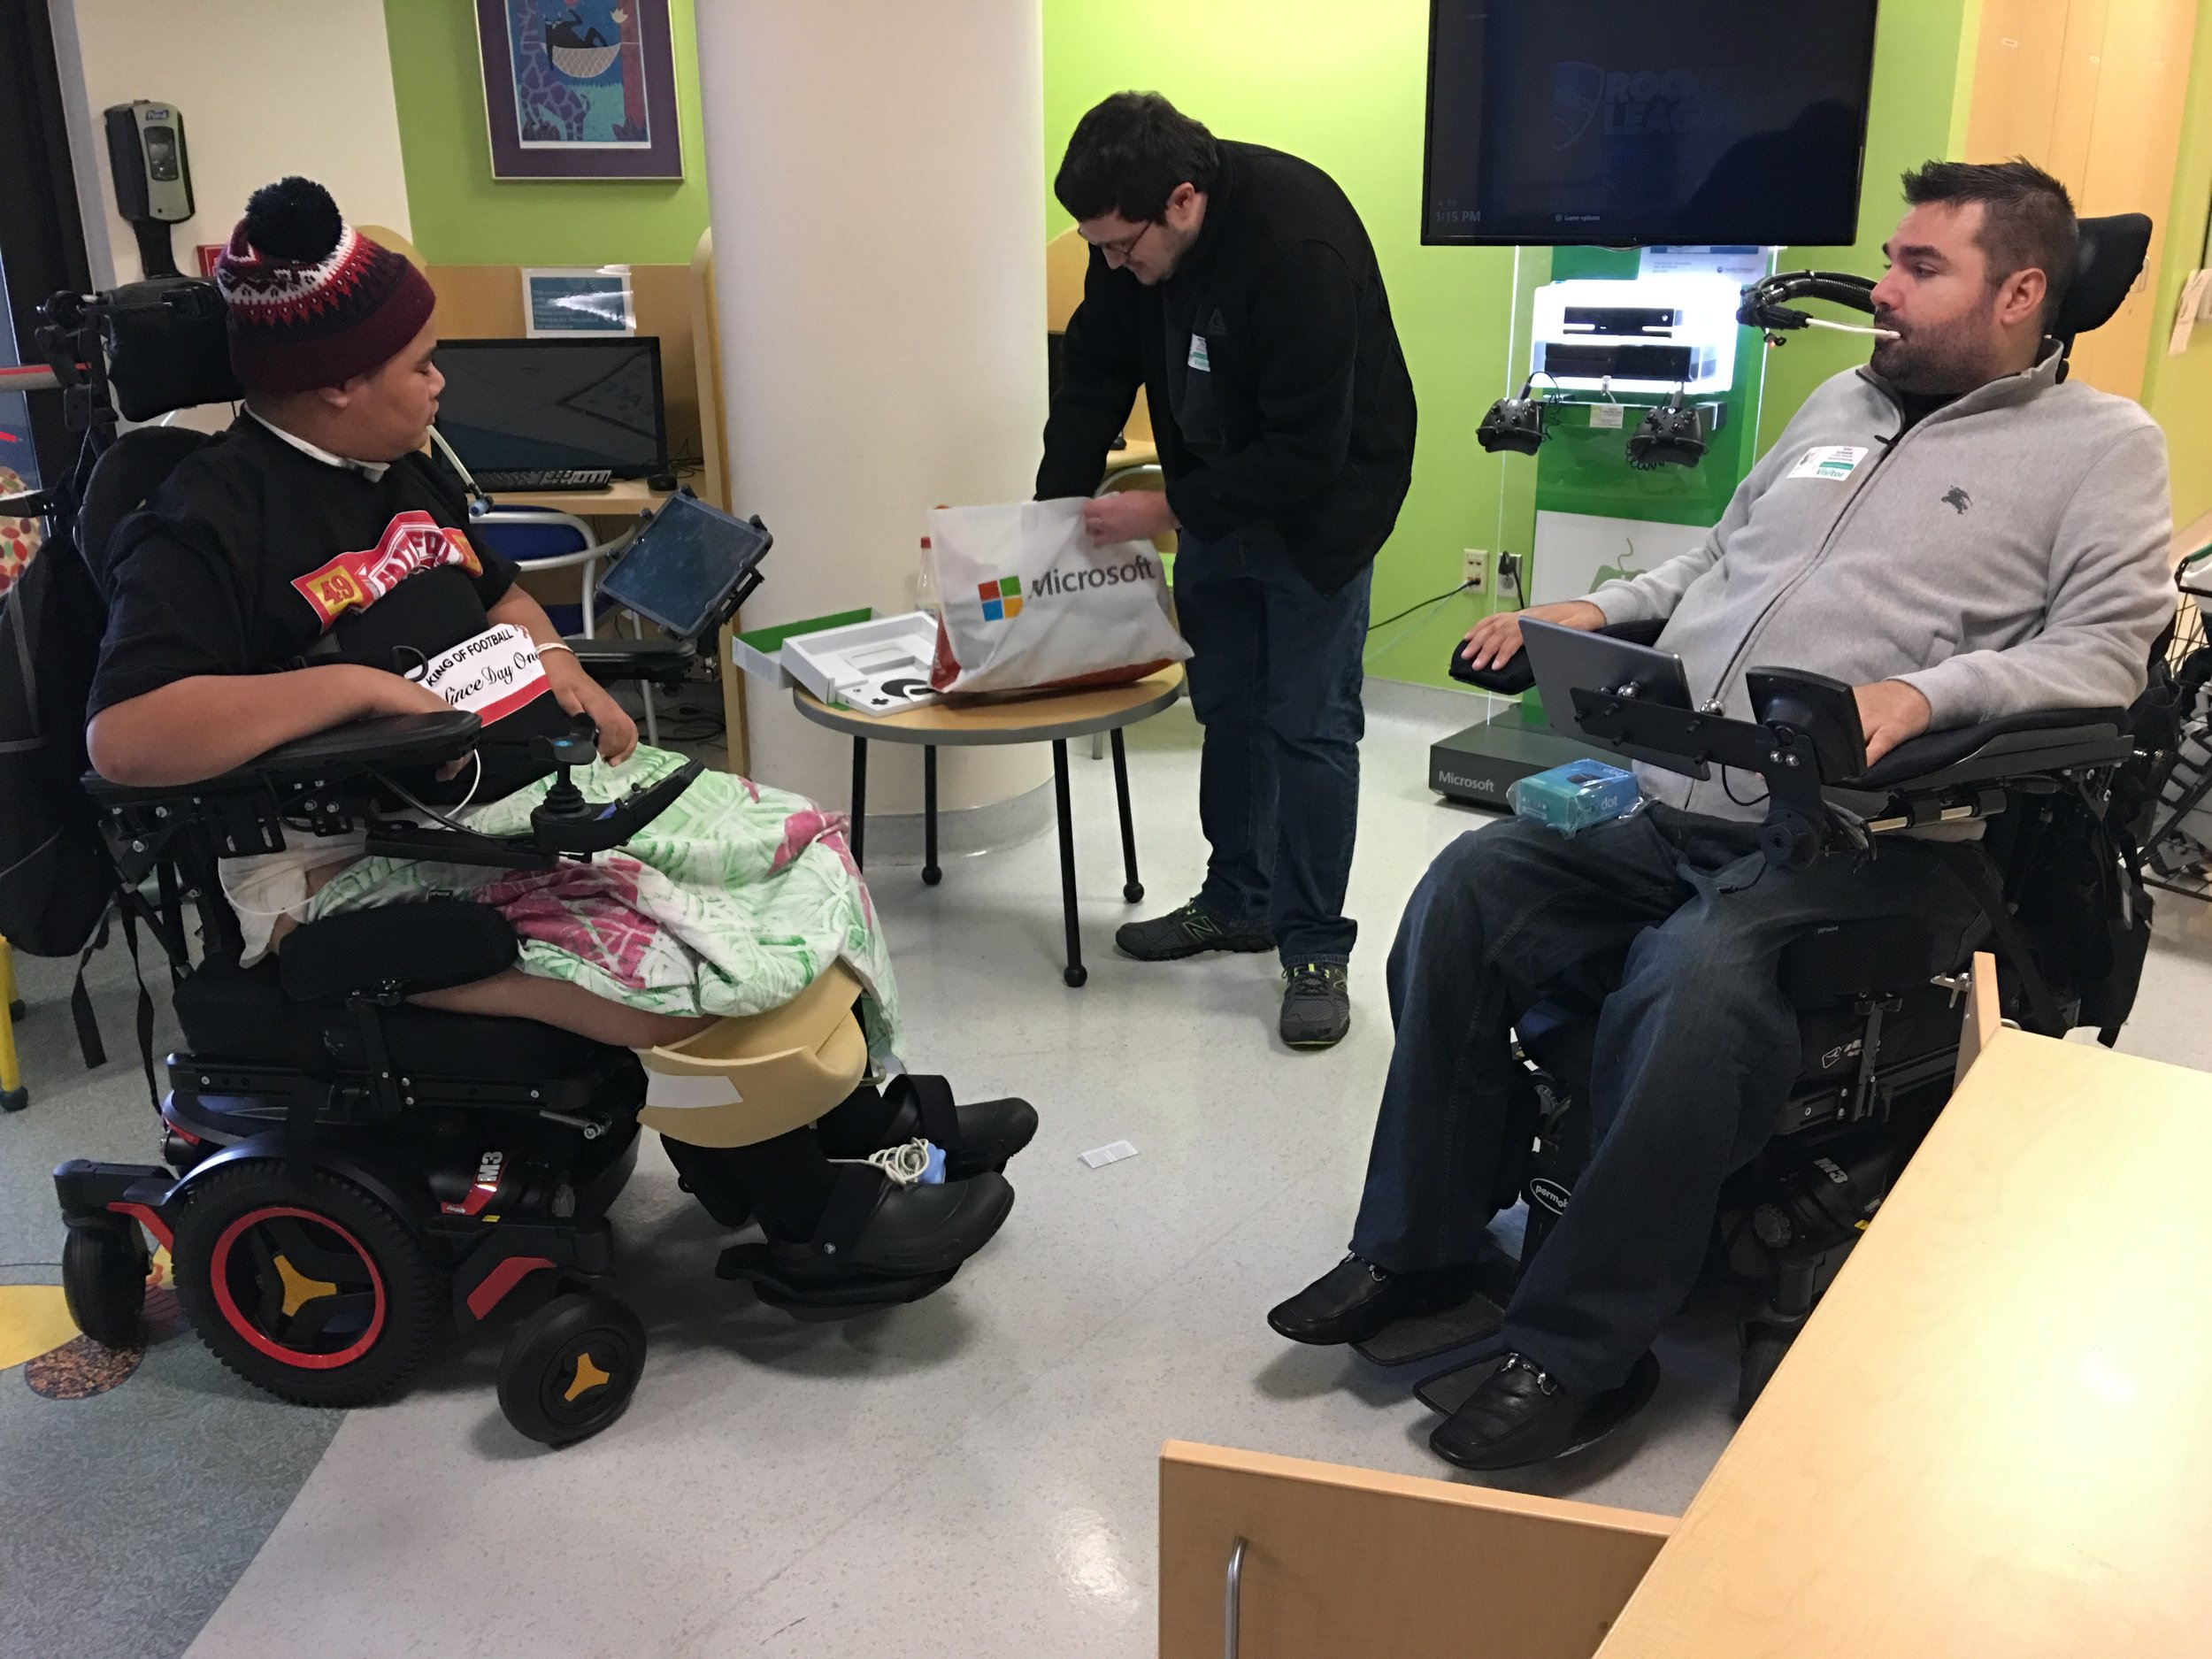 Maui (Pictured on Left) at Seattle Children's Hospital receiving a Microsoft adaptive controller from Tyler (Pictured on right) and the TSF.